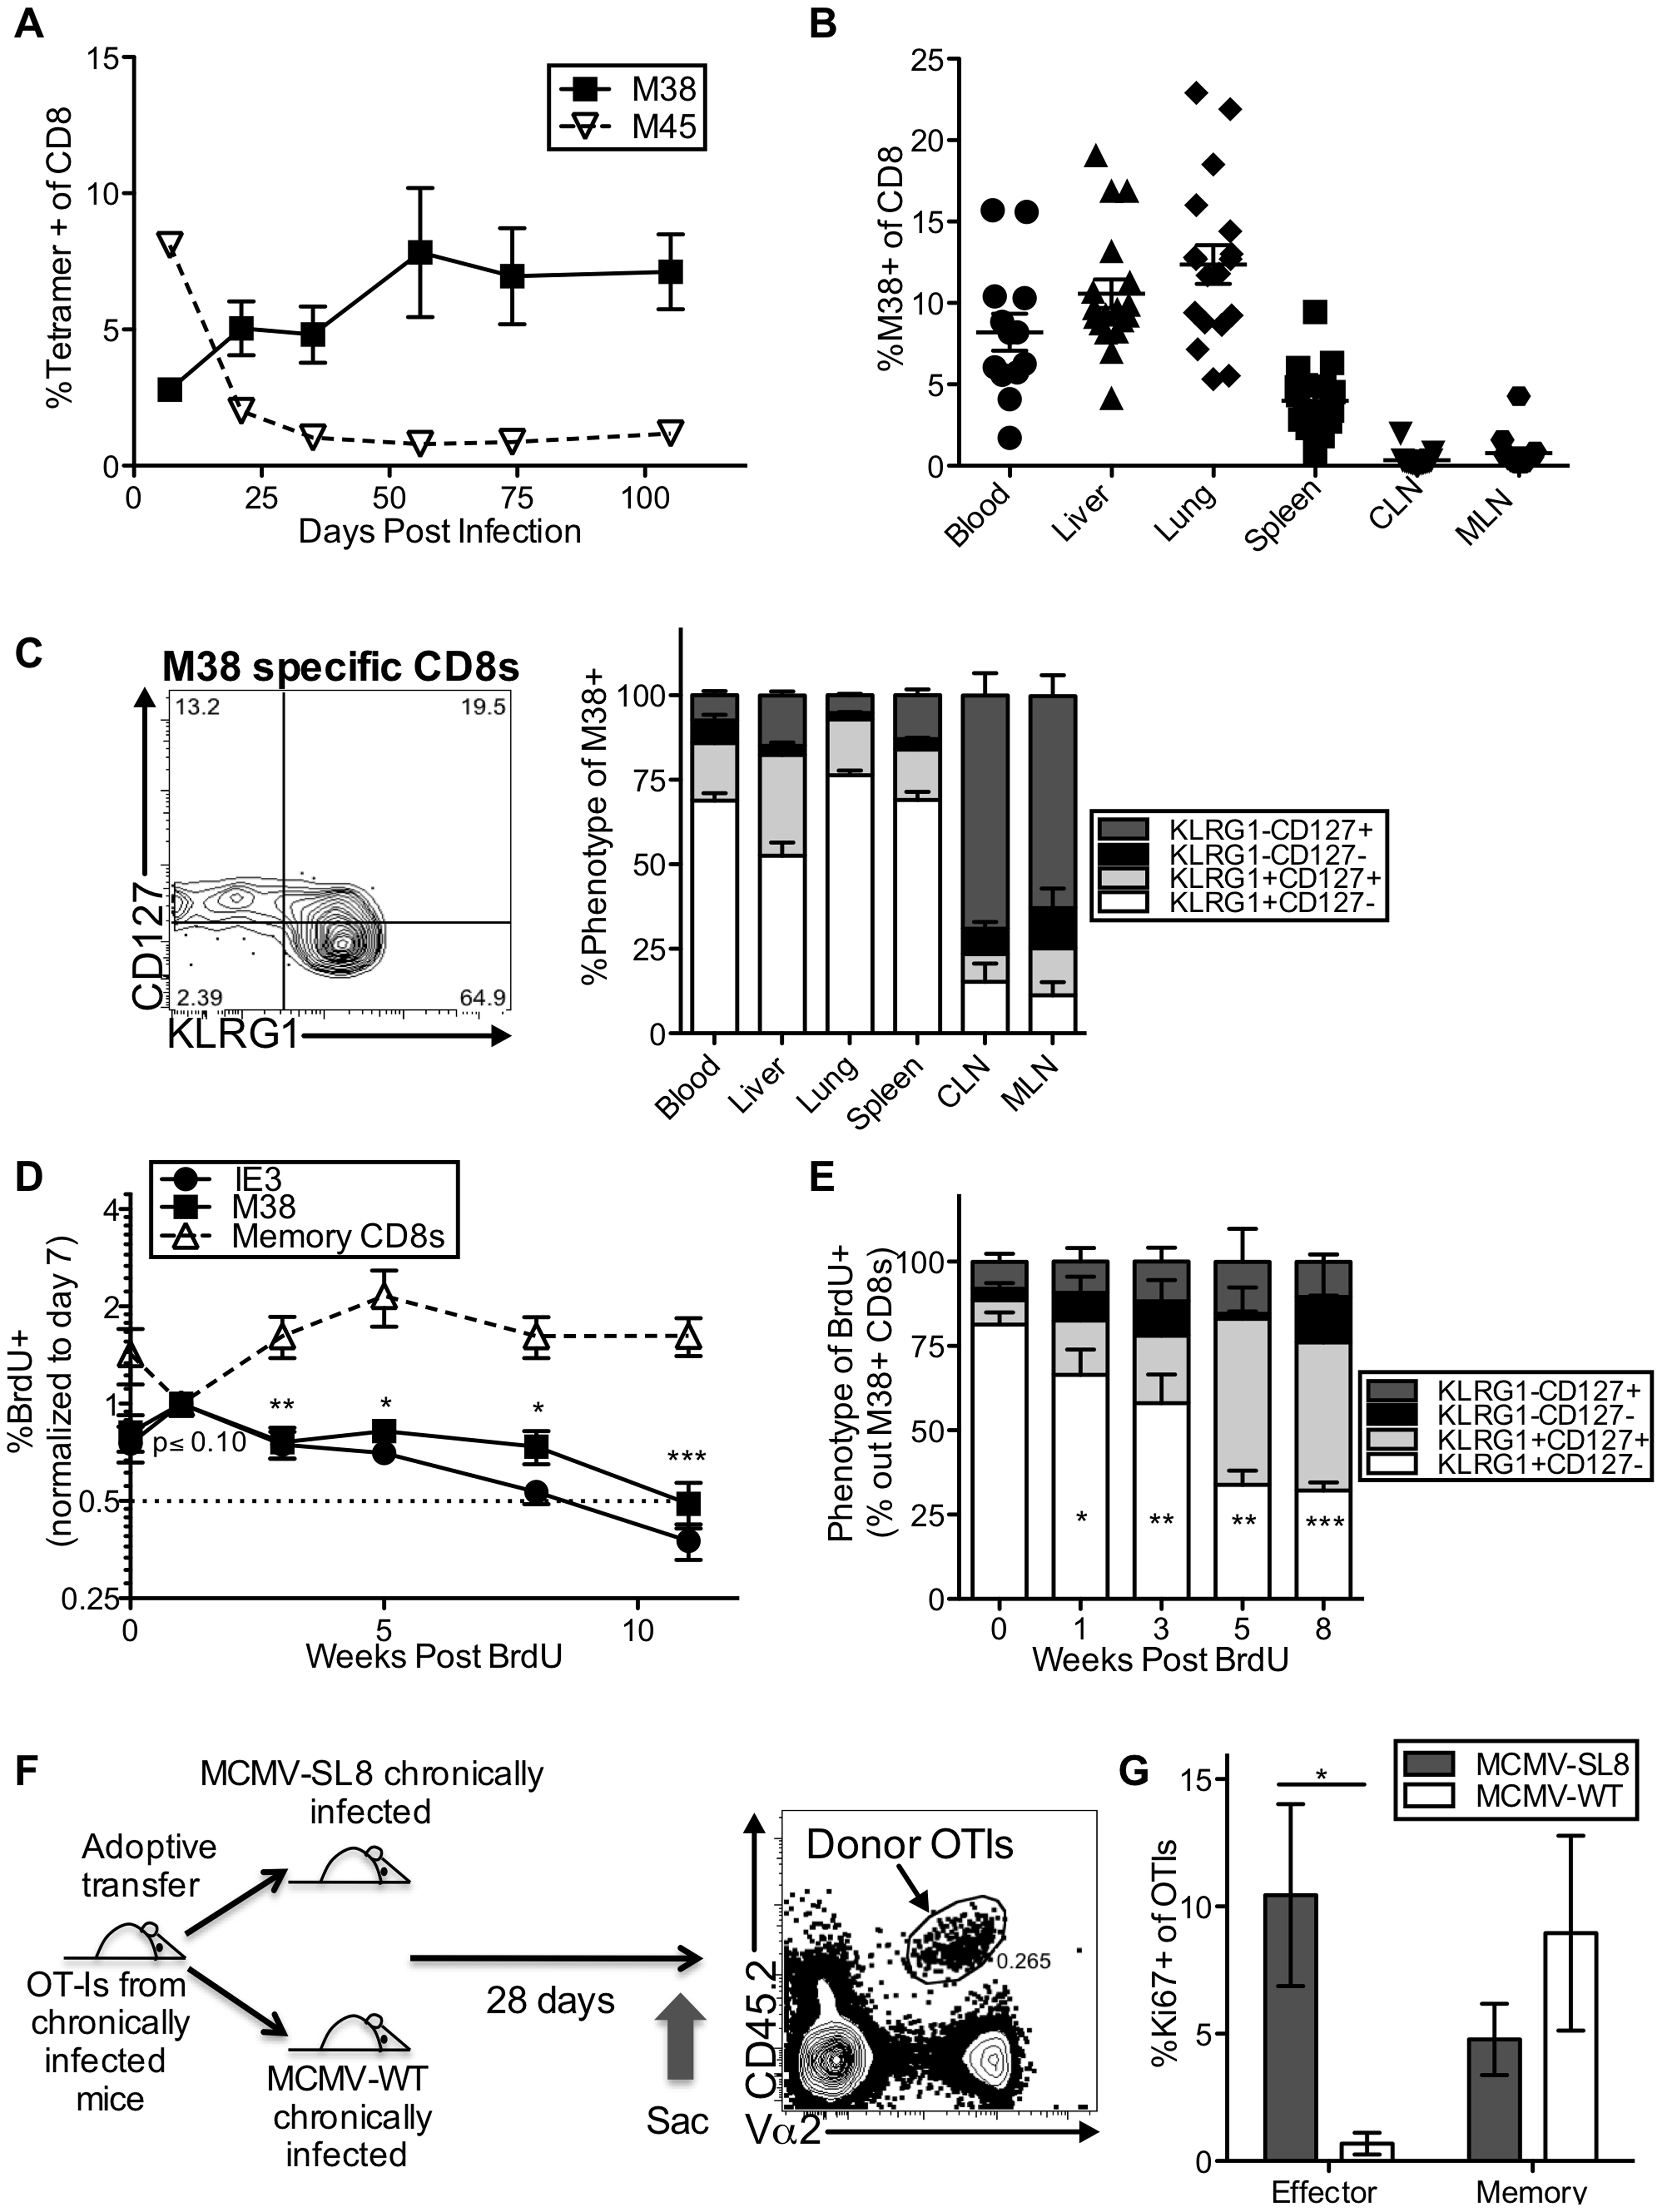 Effector-phenotype CD8s turnover continuously and undergo antigen-dependent division during MCMV-induced memory inflation.